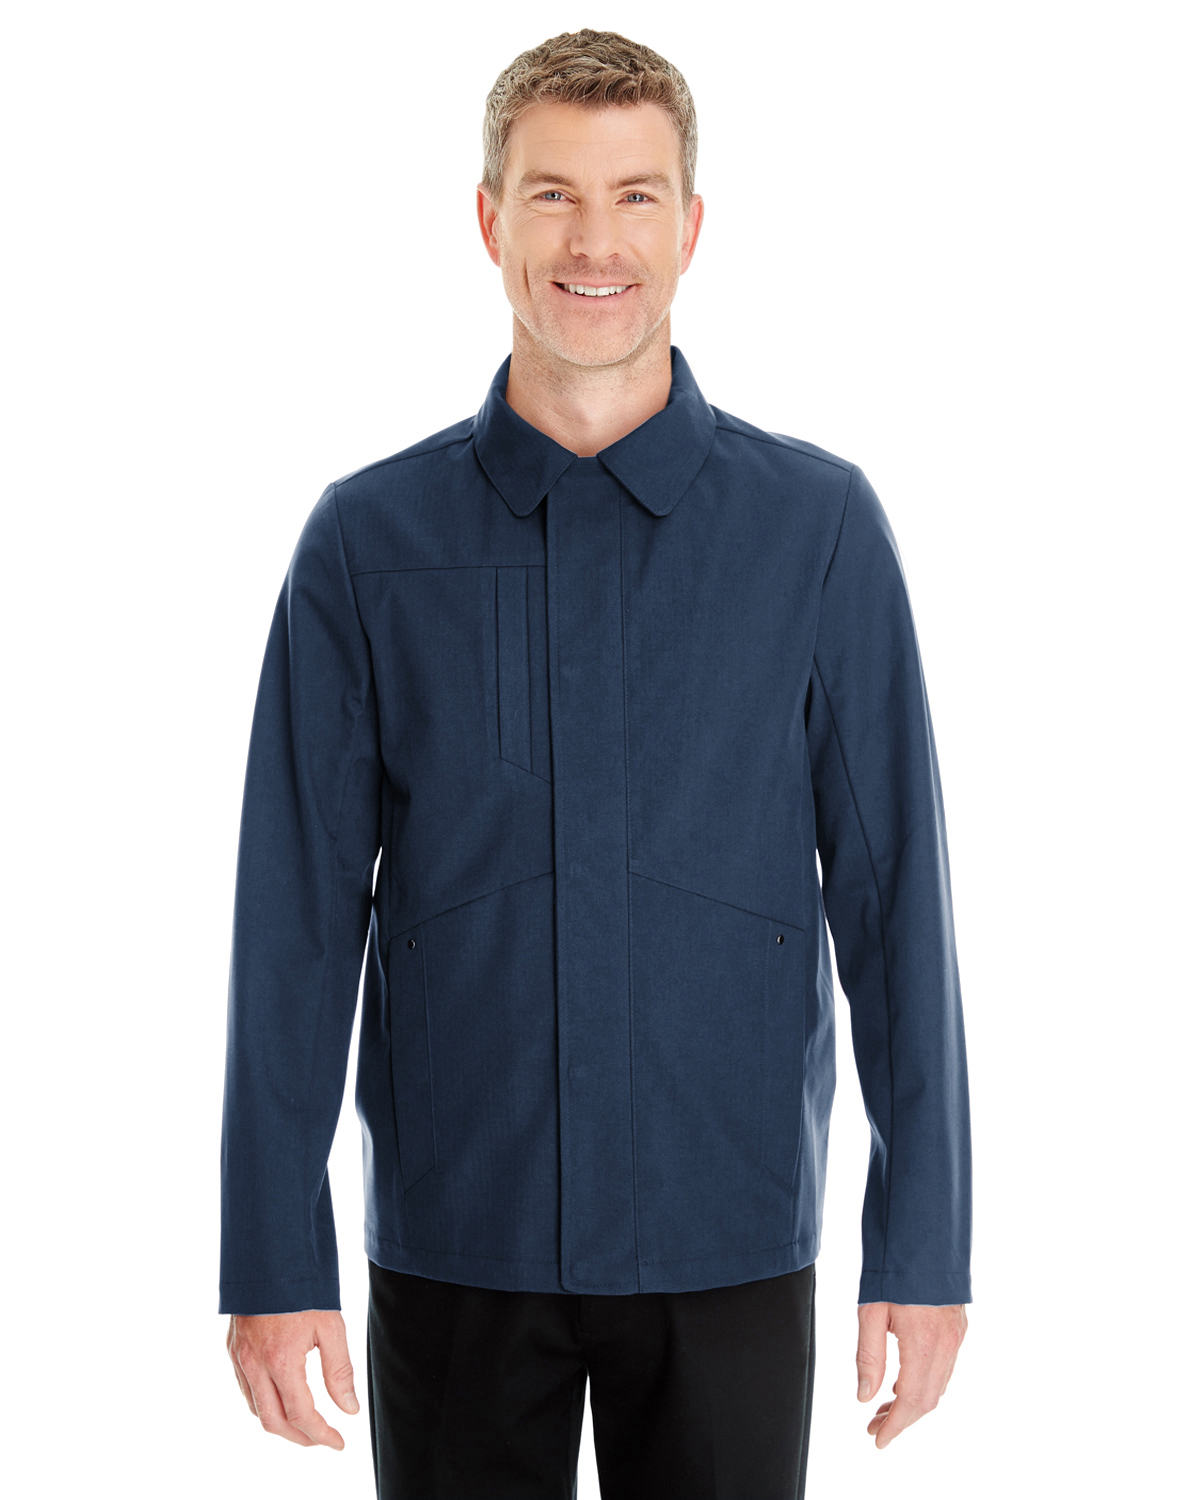 Ash City - North End NE705 - Men's Edge Soft Shell Jacket with Fold-Down Collar